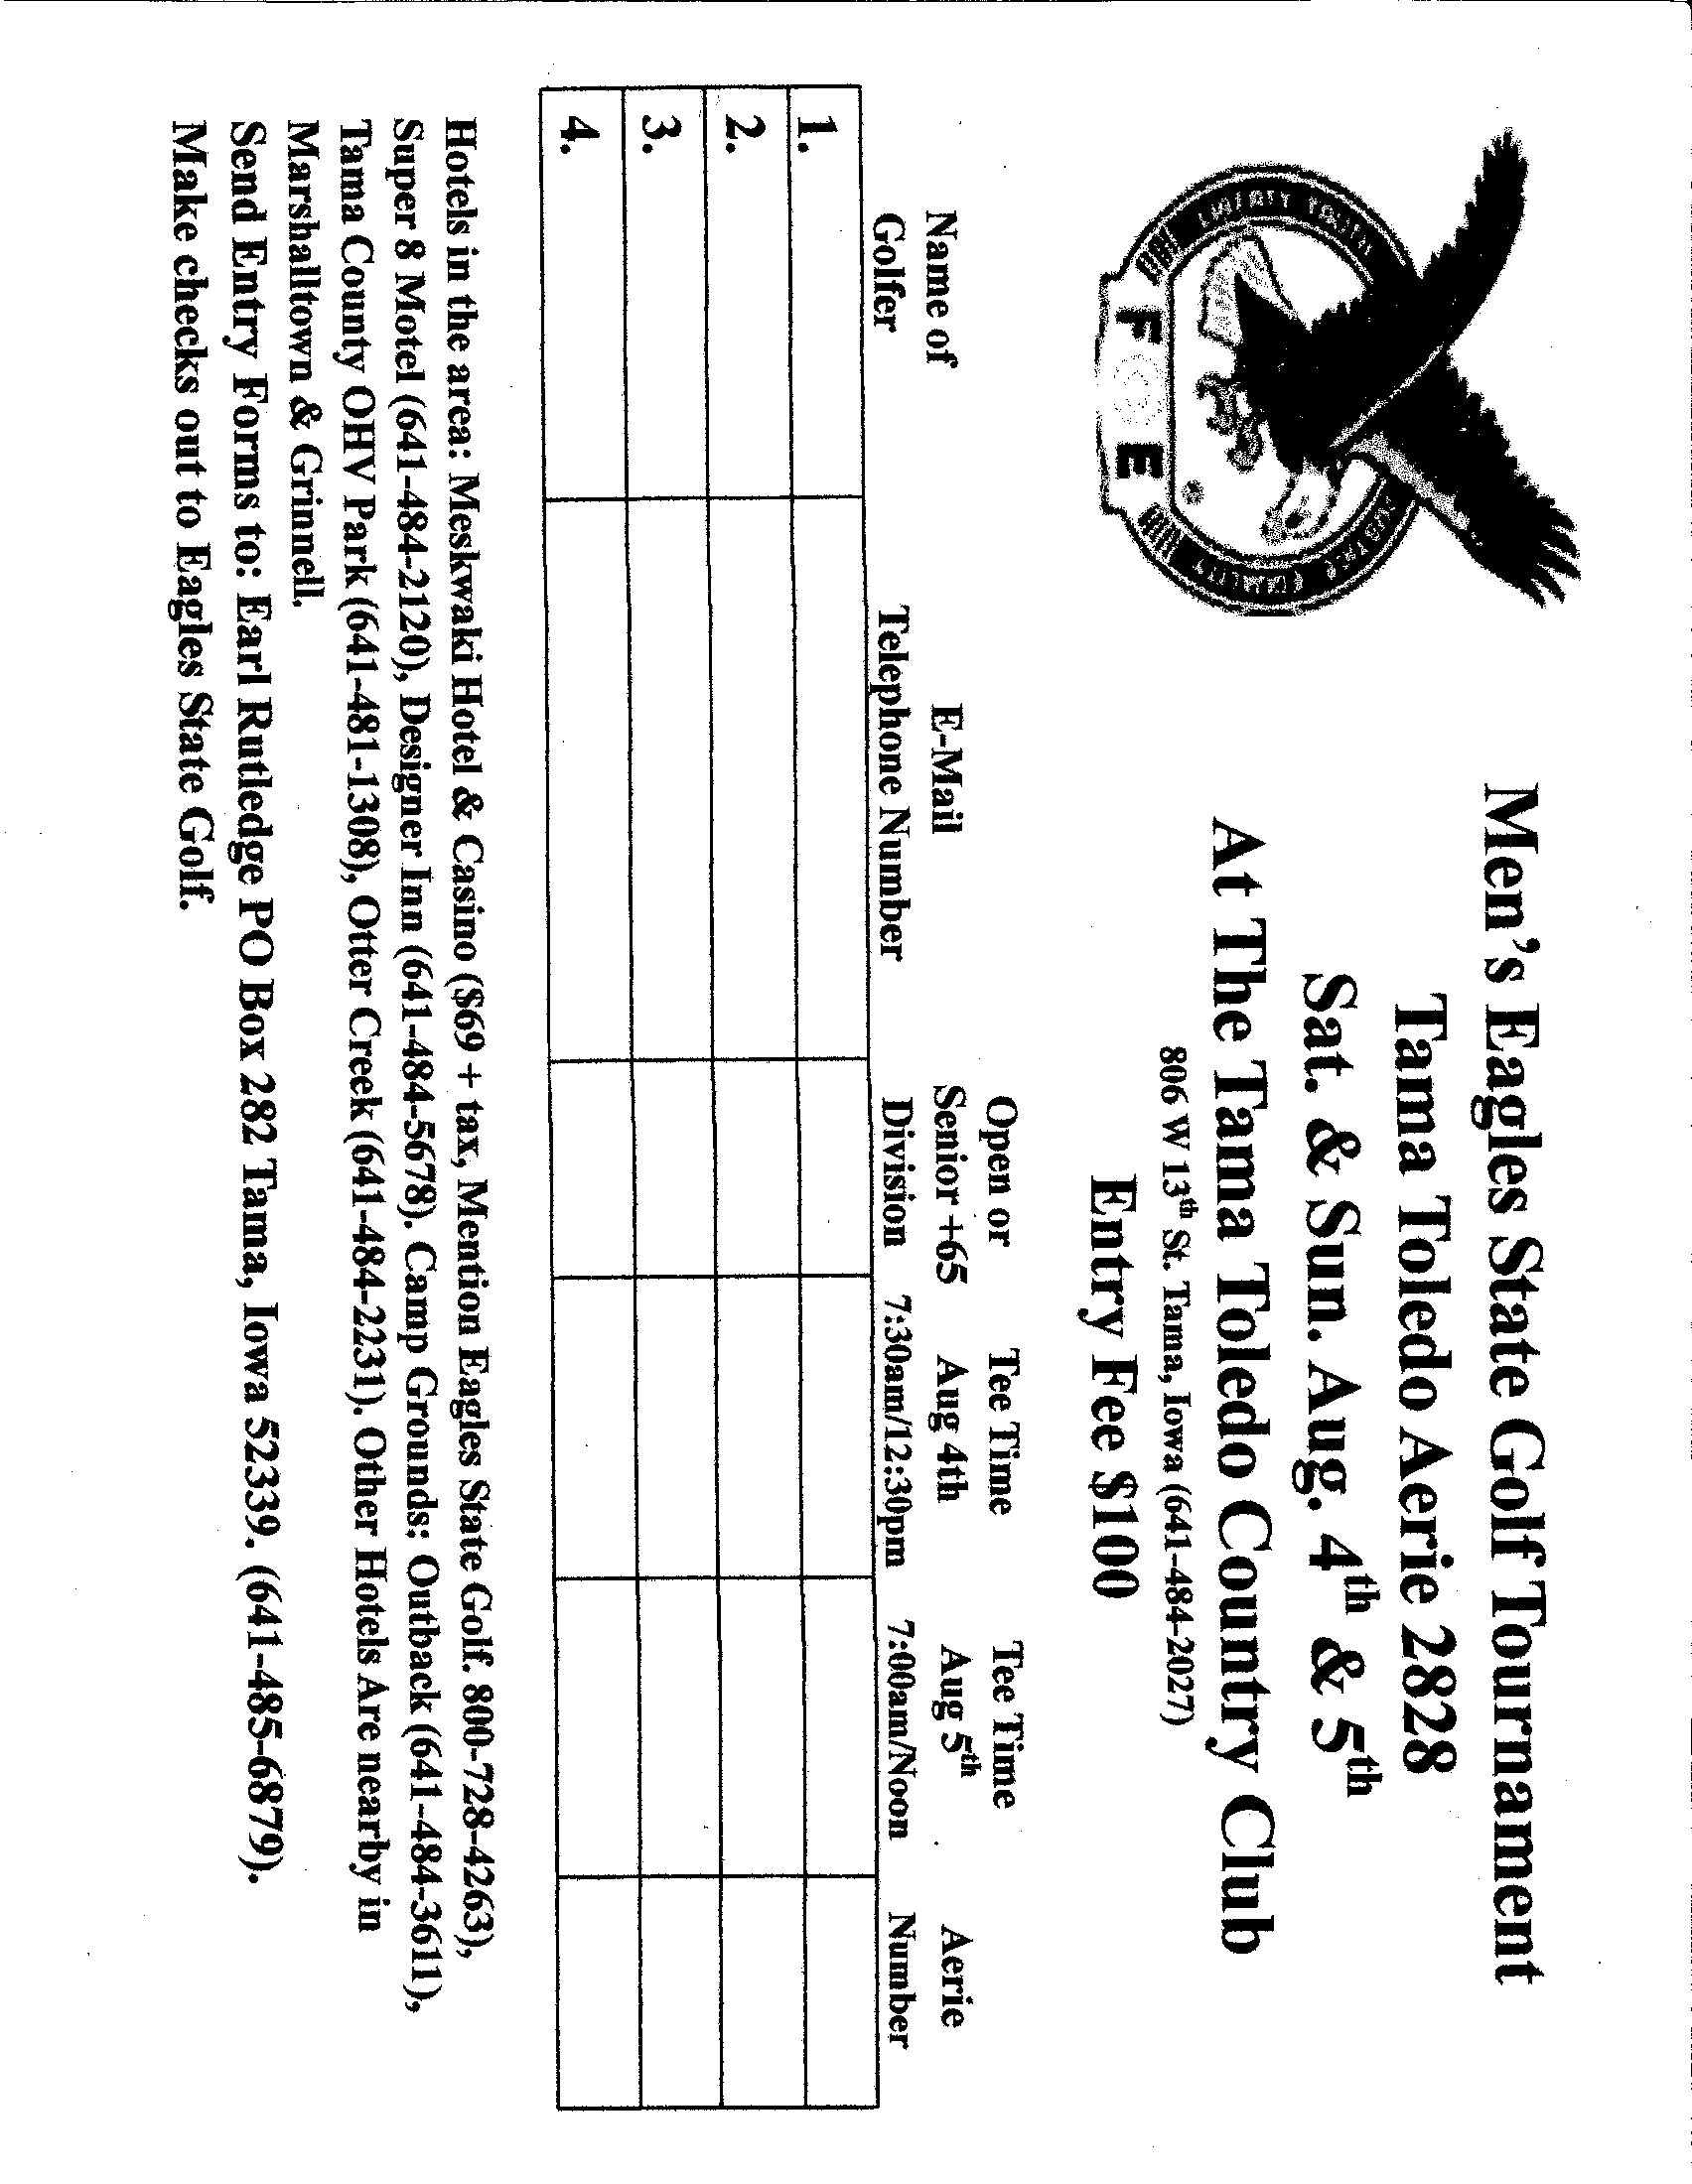 Forms | Iowa State Fraternal Order of Eagles